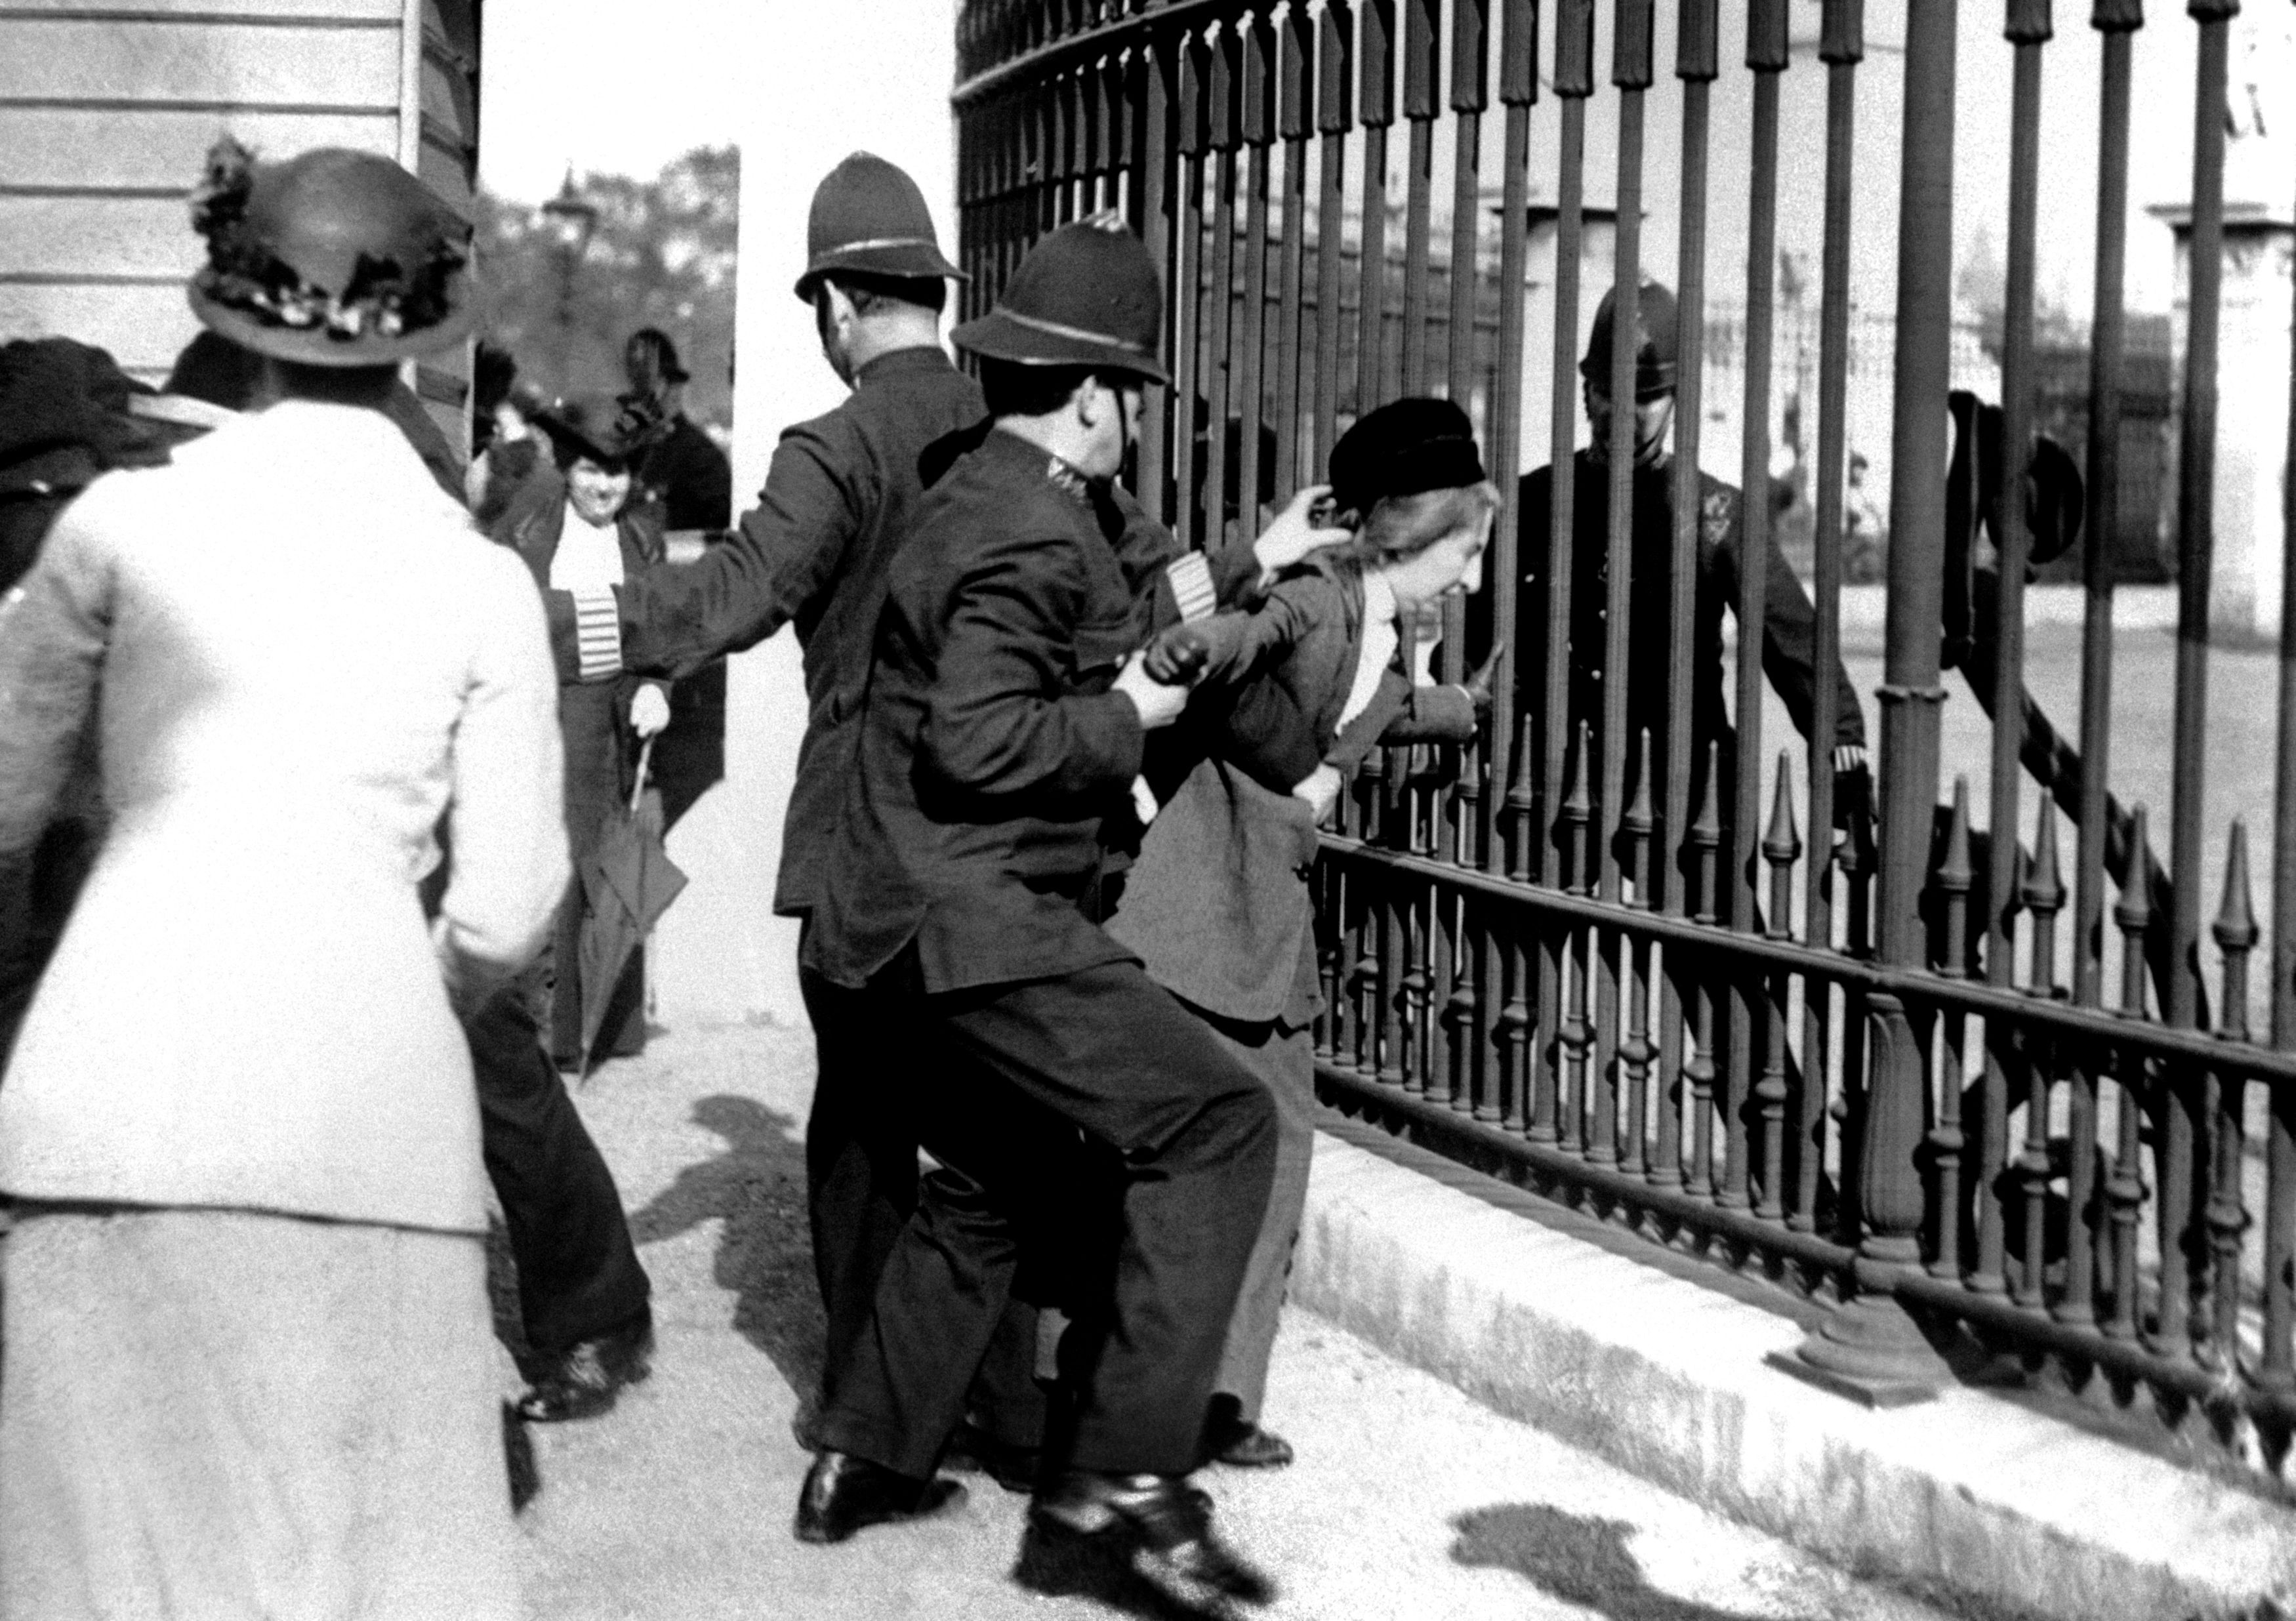 A policeman restraining a demonstrator in 1914 as suffragettes gathered outside Buckingham Palace (PA)